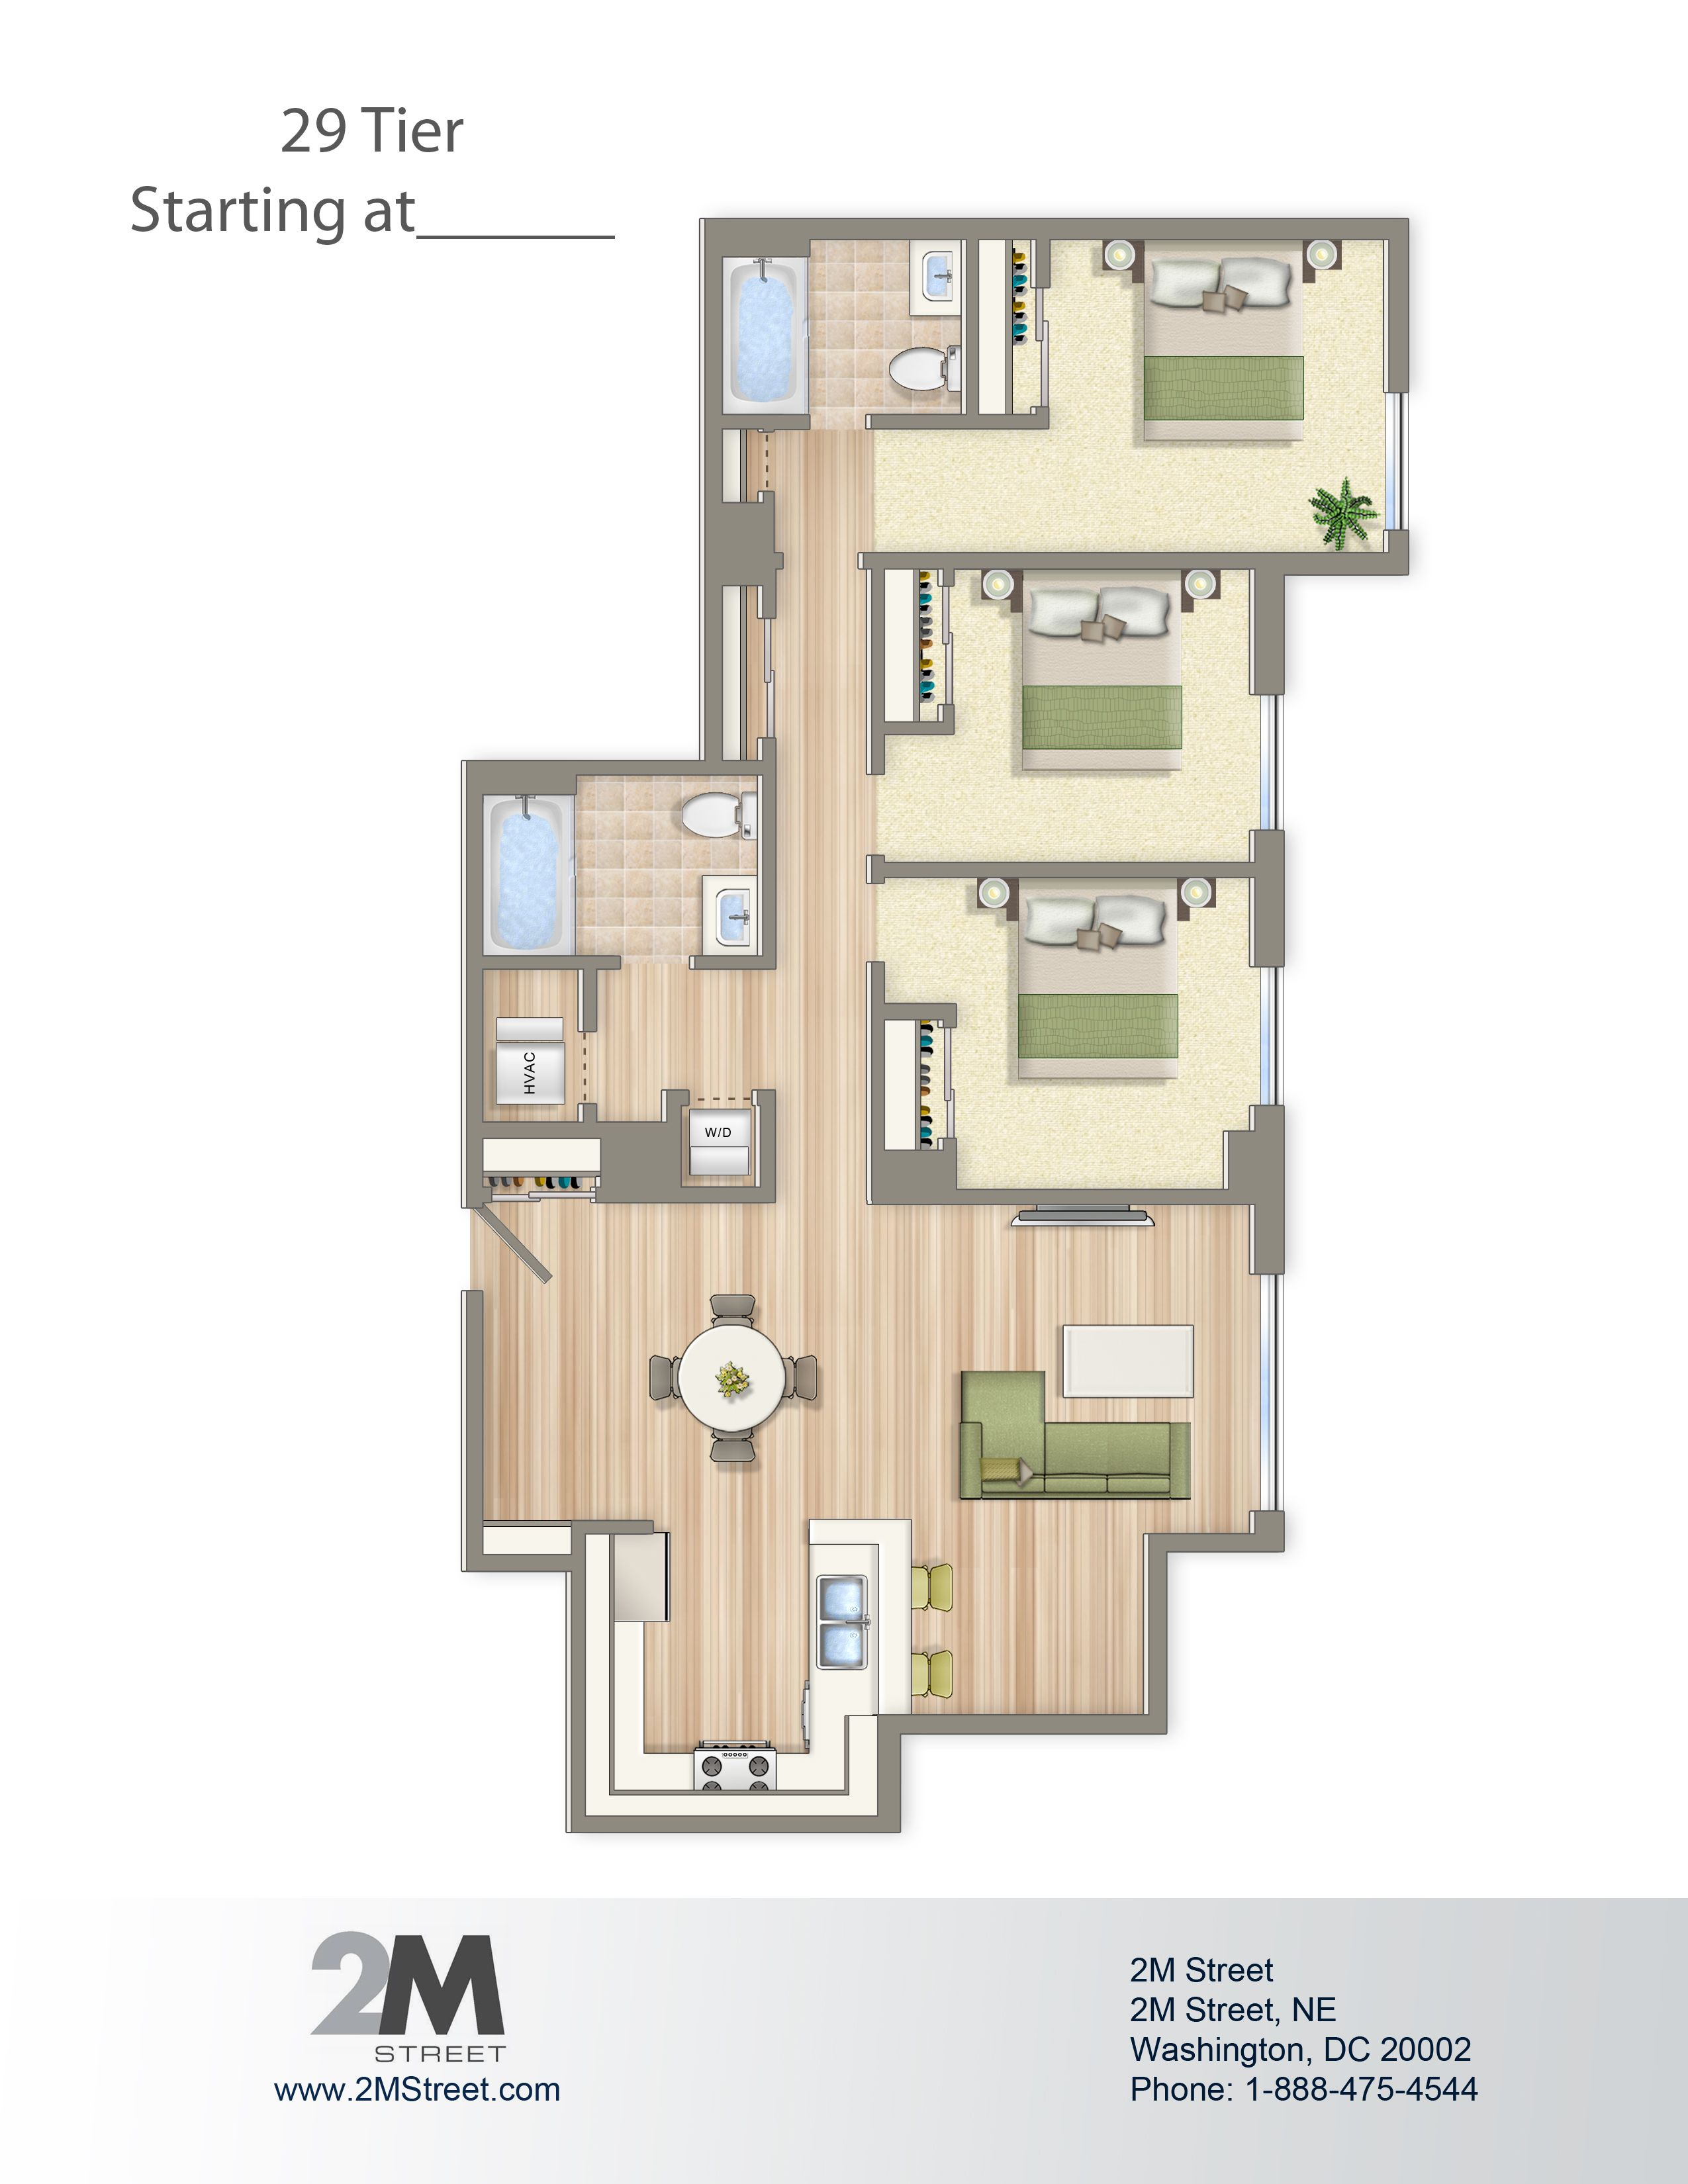 Take A Peek At Floor Plans, Pricing And Availability For Our DC Apartments  In NoMa. Brought To You By WC Smith.